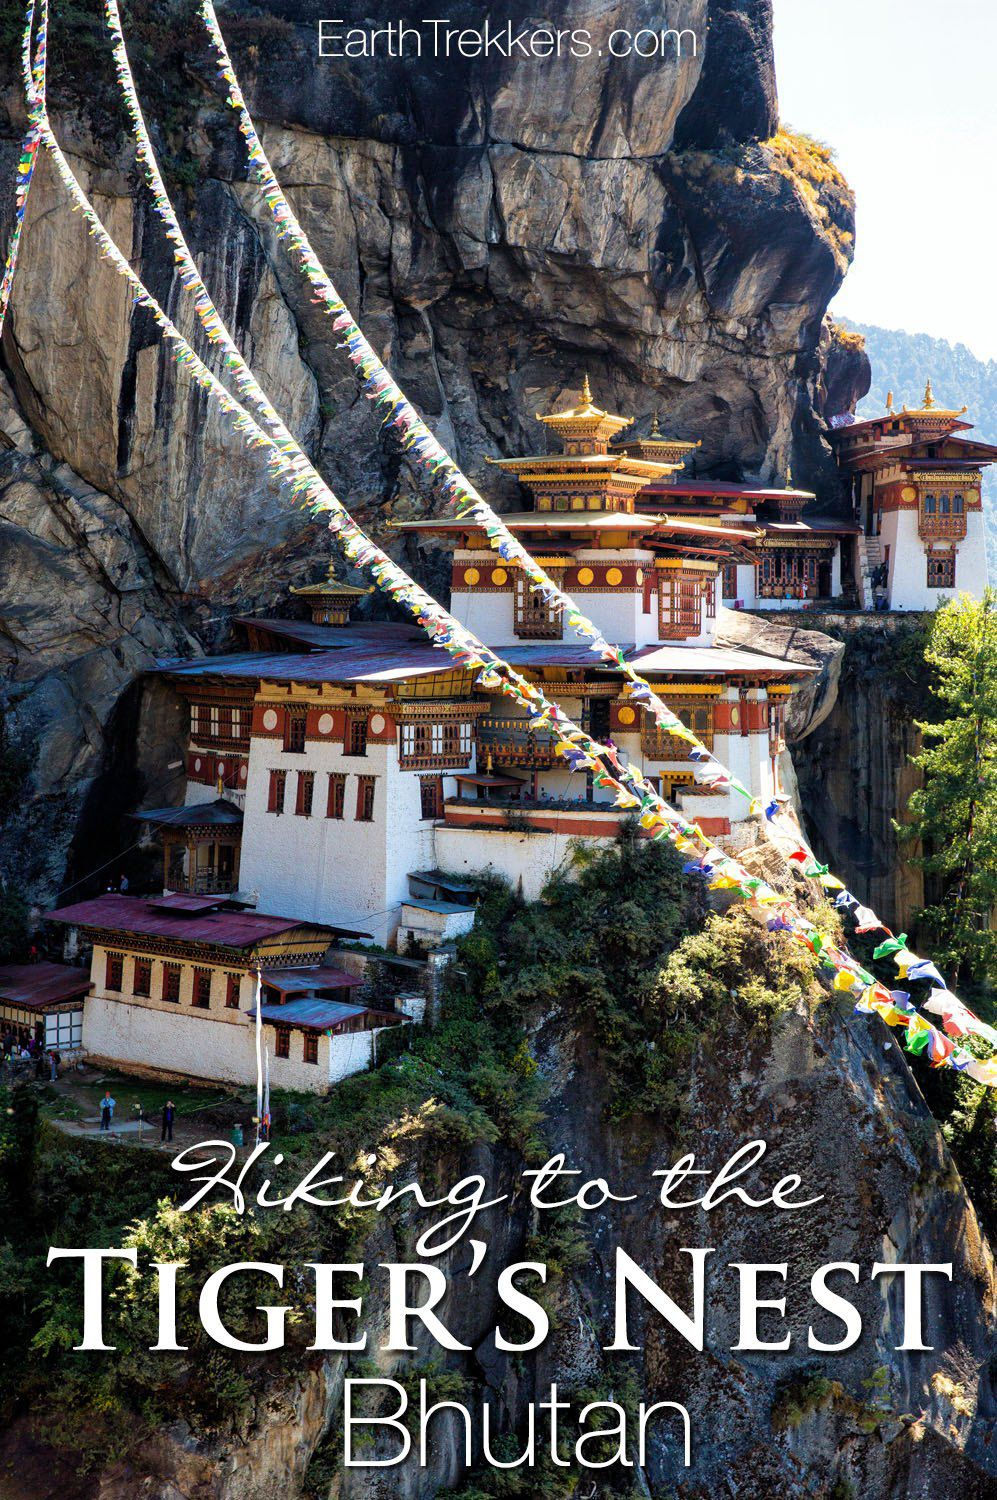 Tiger's Nest (Paro Takstang) hike in Bhutan. #bhutan #tigersnest #hiking #adventuretravel